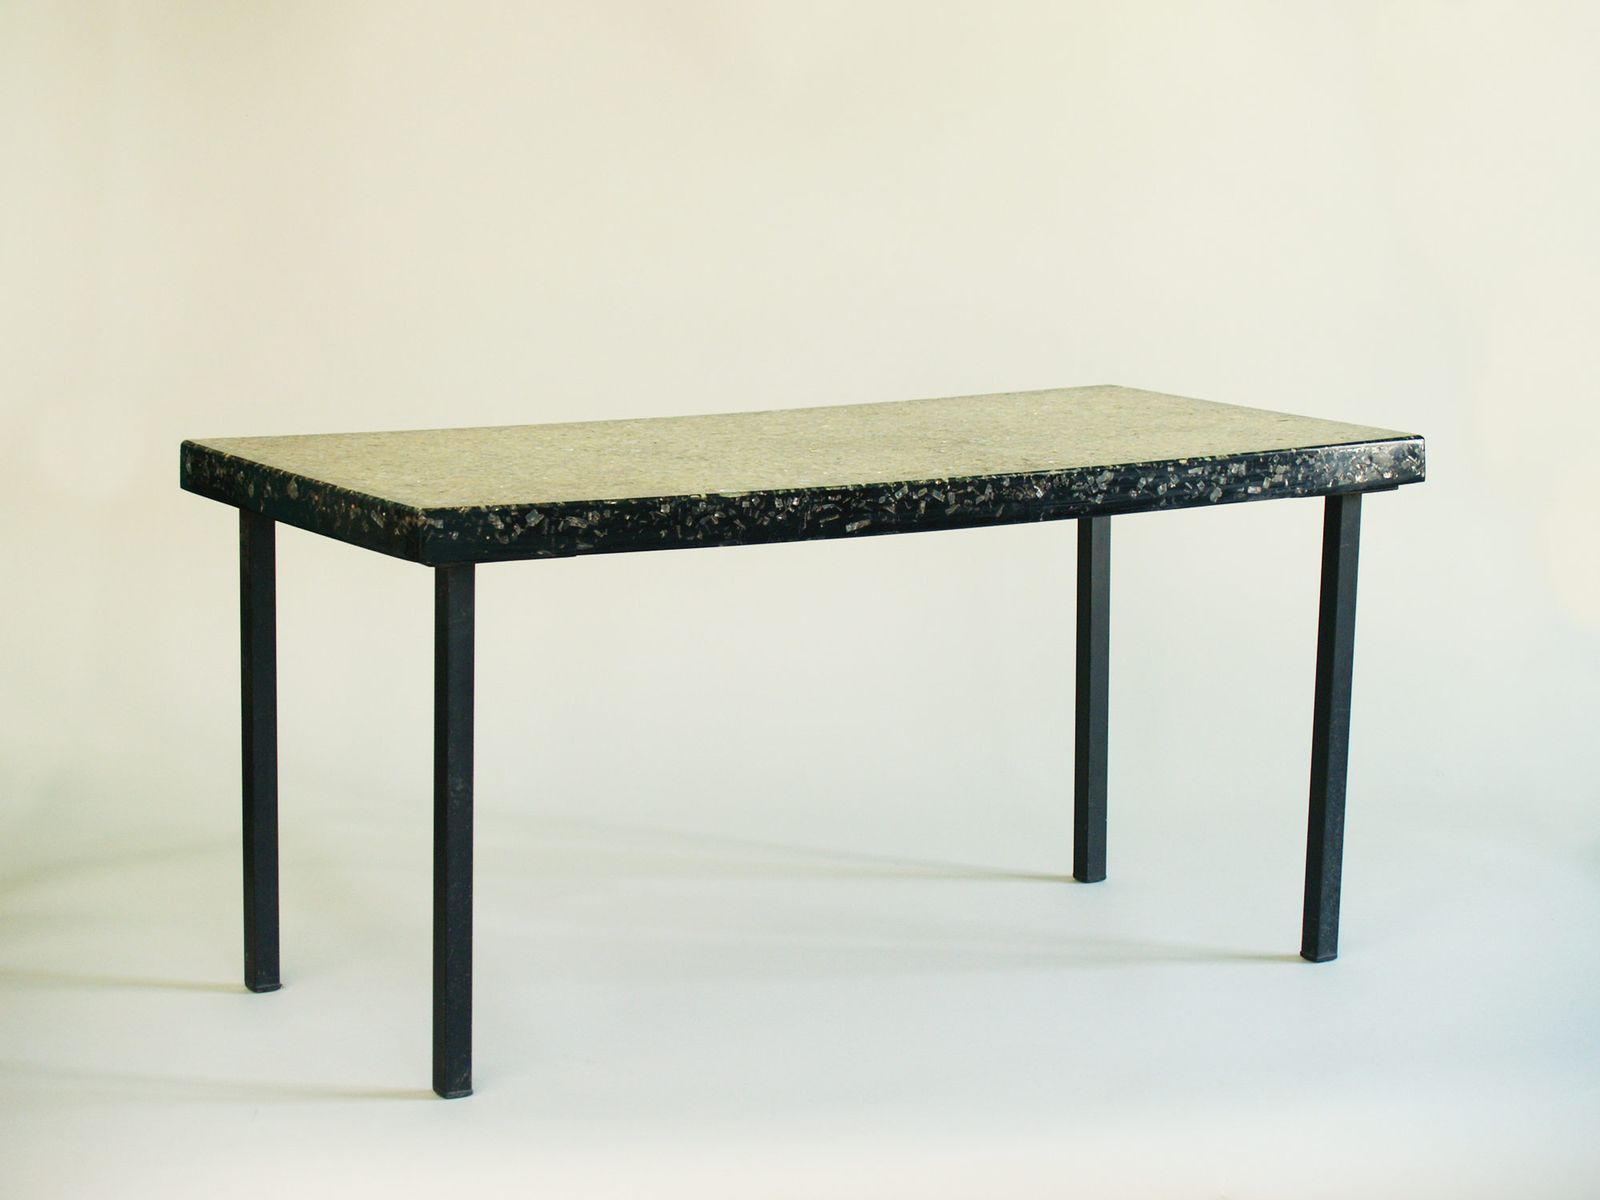 Fractal Resin Coffee Table By Pierre Giraudon 1970s For Sale At Pamono